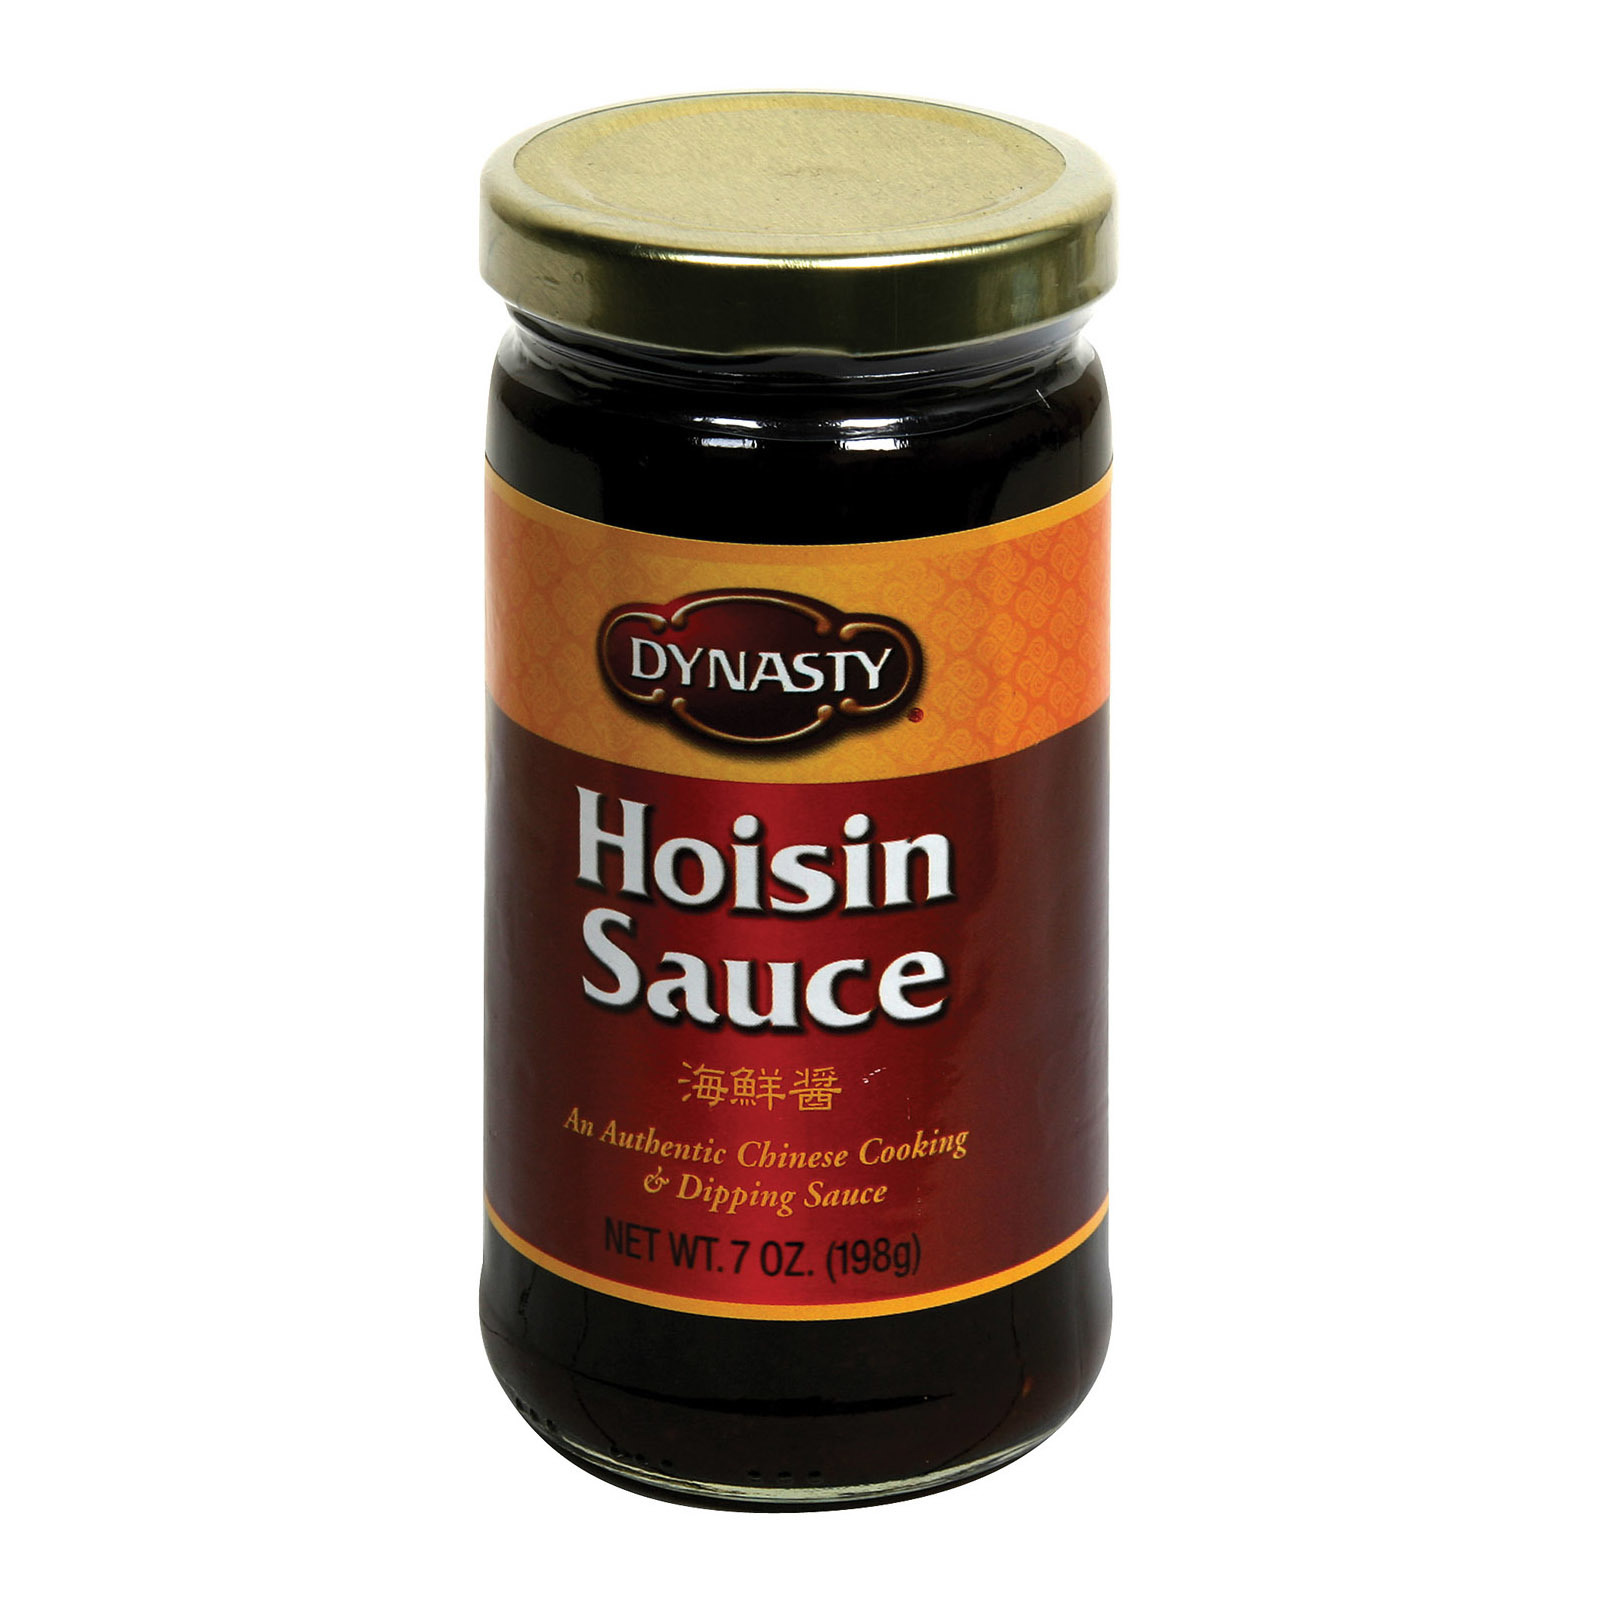 Dynasty Sauce - Hoisin - 7 oz.